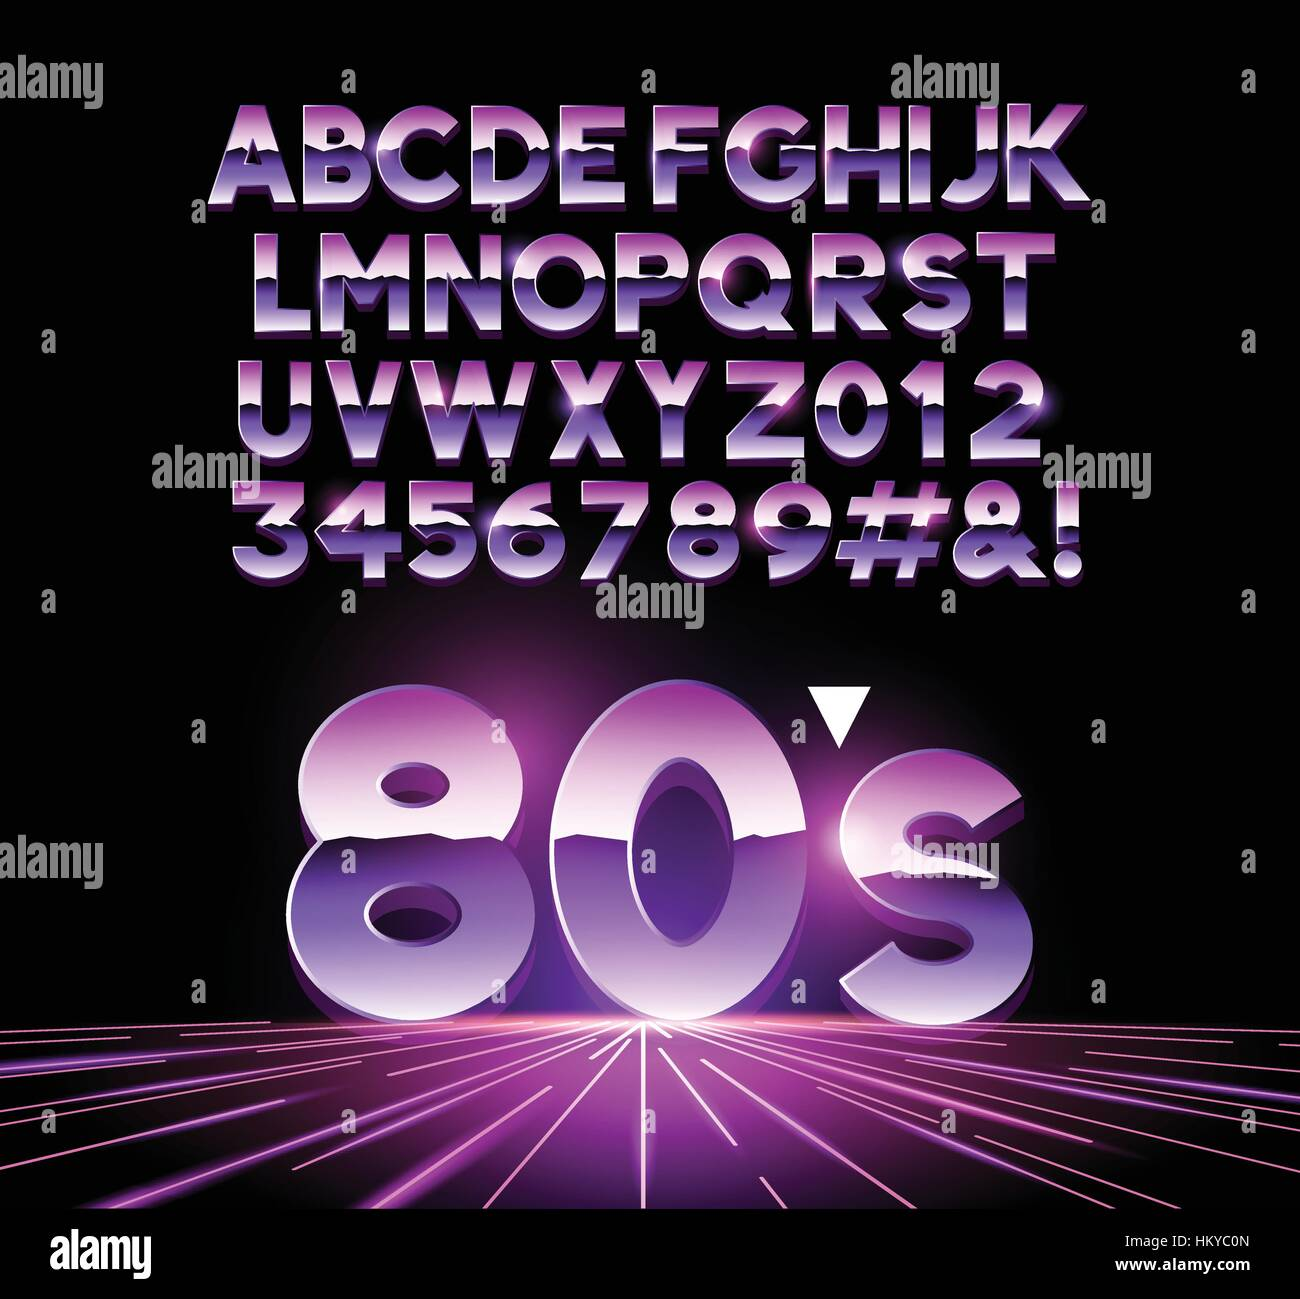 retro Airbushed style 1980's shiny Letters with a futuristic look from the decade. Vector illustration - Stock Image